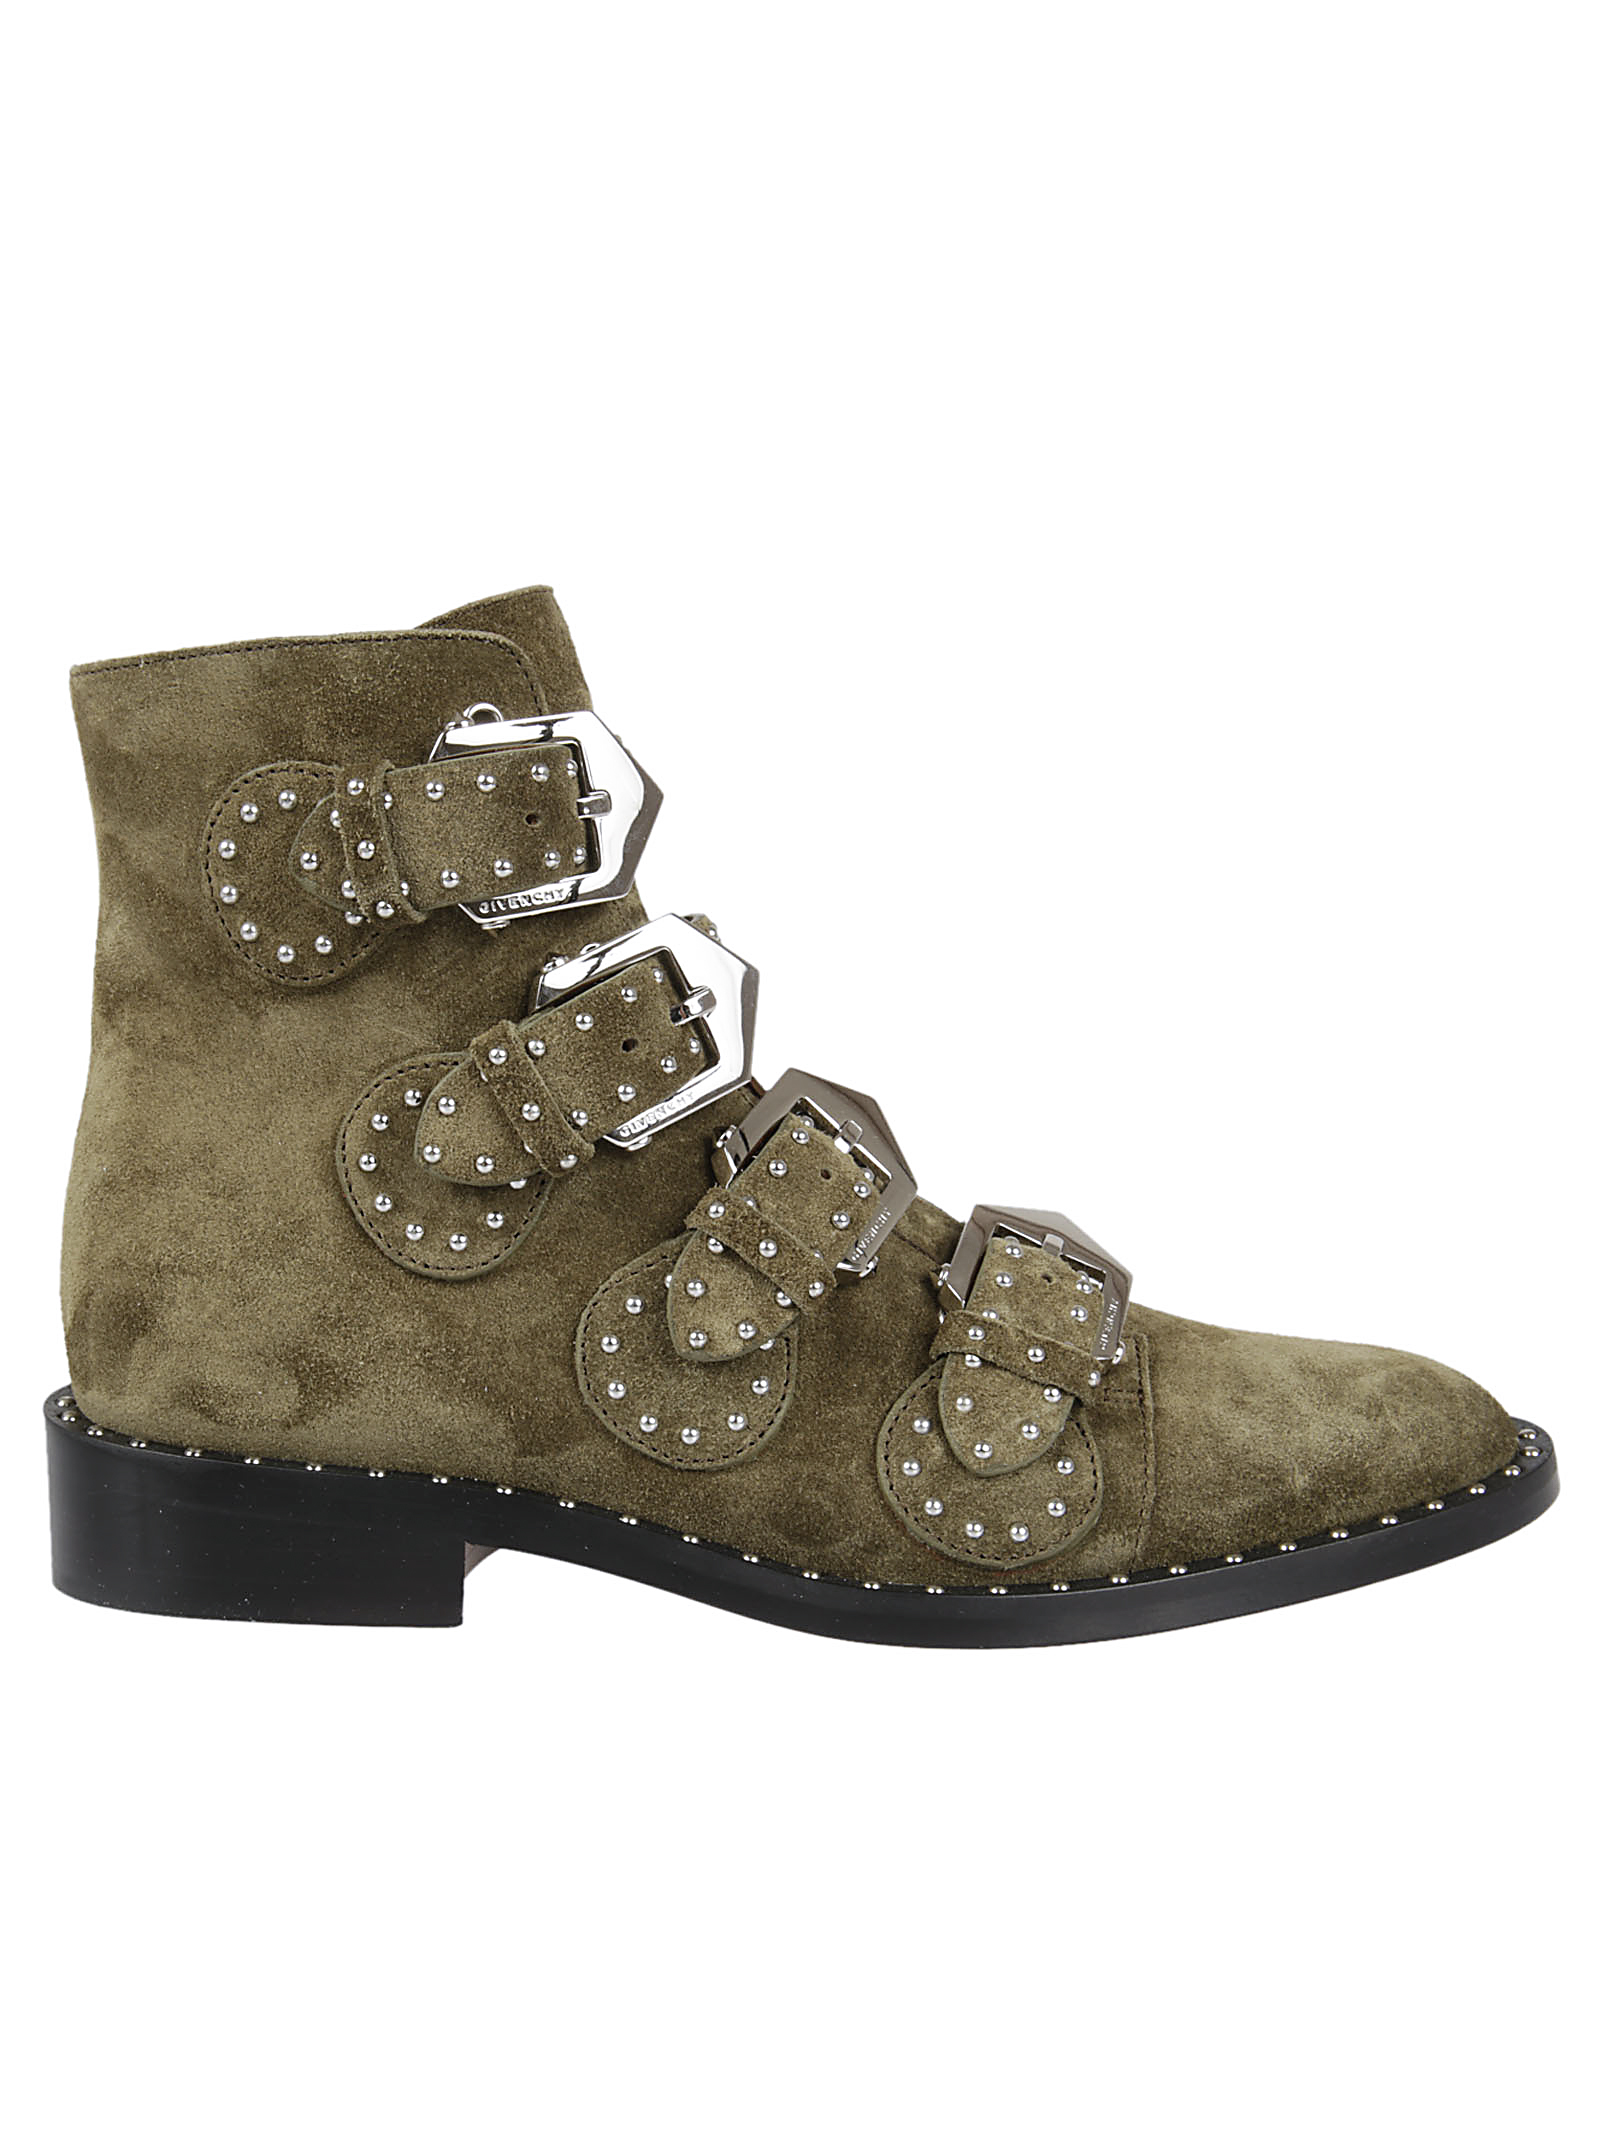 Givenchy Givenchy Studded Ankle Boots